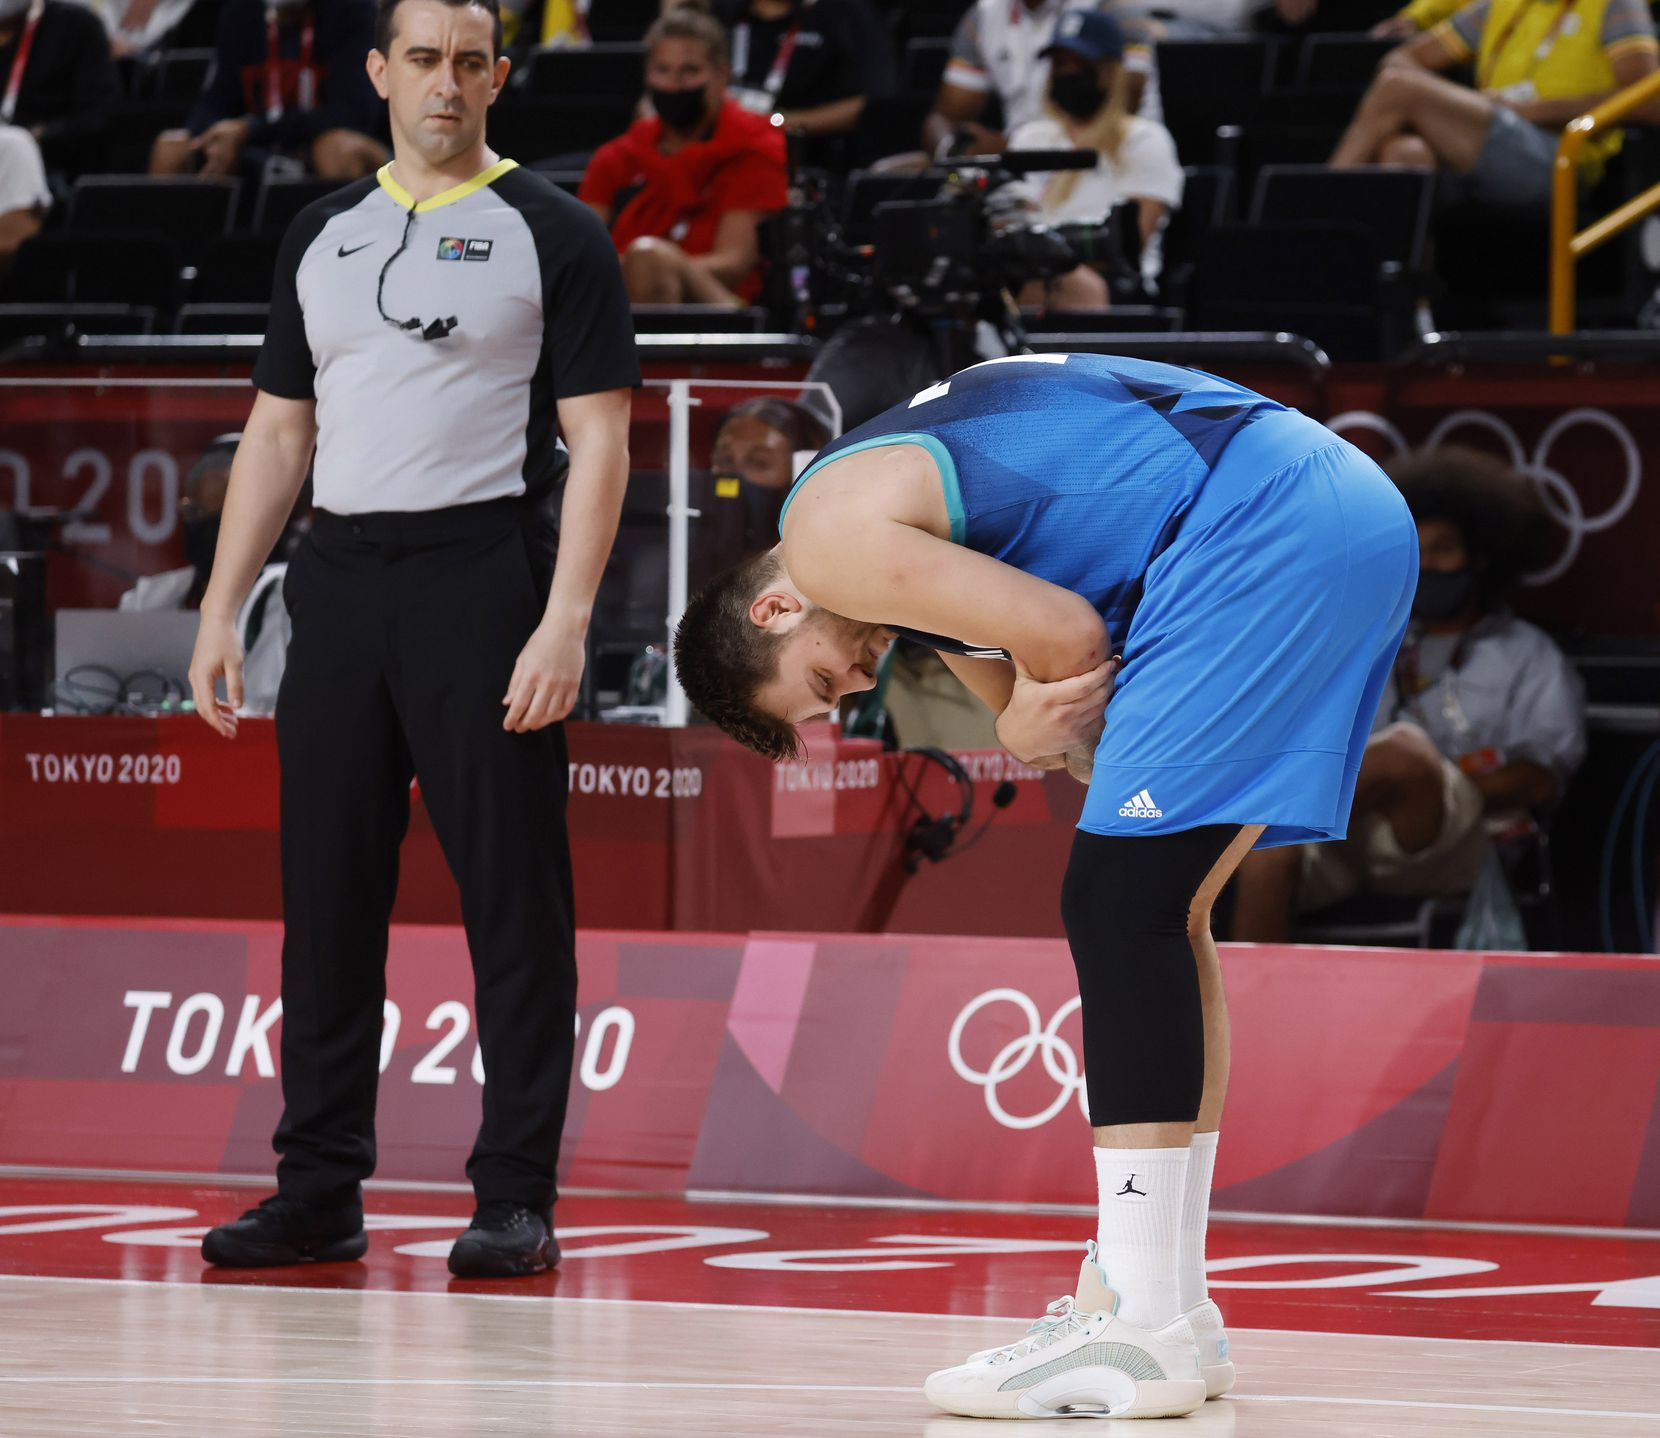 Slovenia's Luka Doncic (77) grabs his arm near his elbow where he fell on it during a game against France during the first half of a men's basketball semifinal at the postponed 2020 Tokyo Olympics at Saitama Super Arena, on Thursday, August 5, 2021, in Saitama, Japan. (Vernon Bryant/The Dallas Morning News)